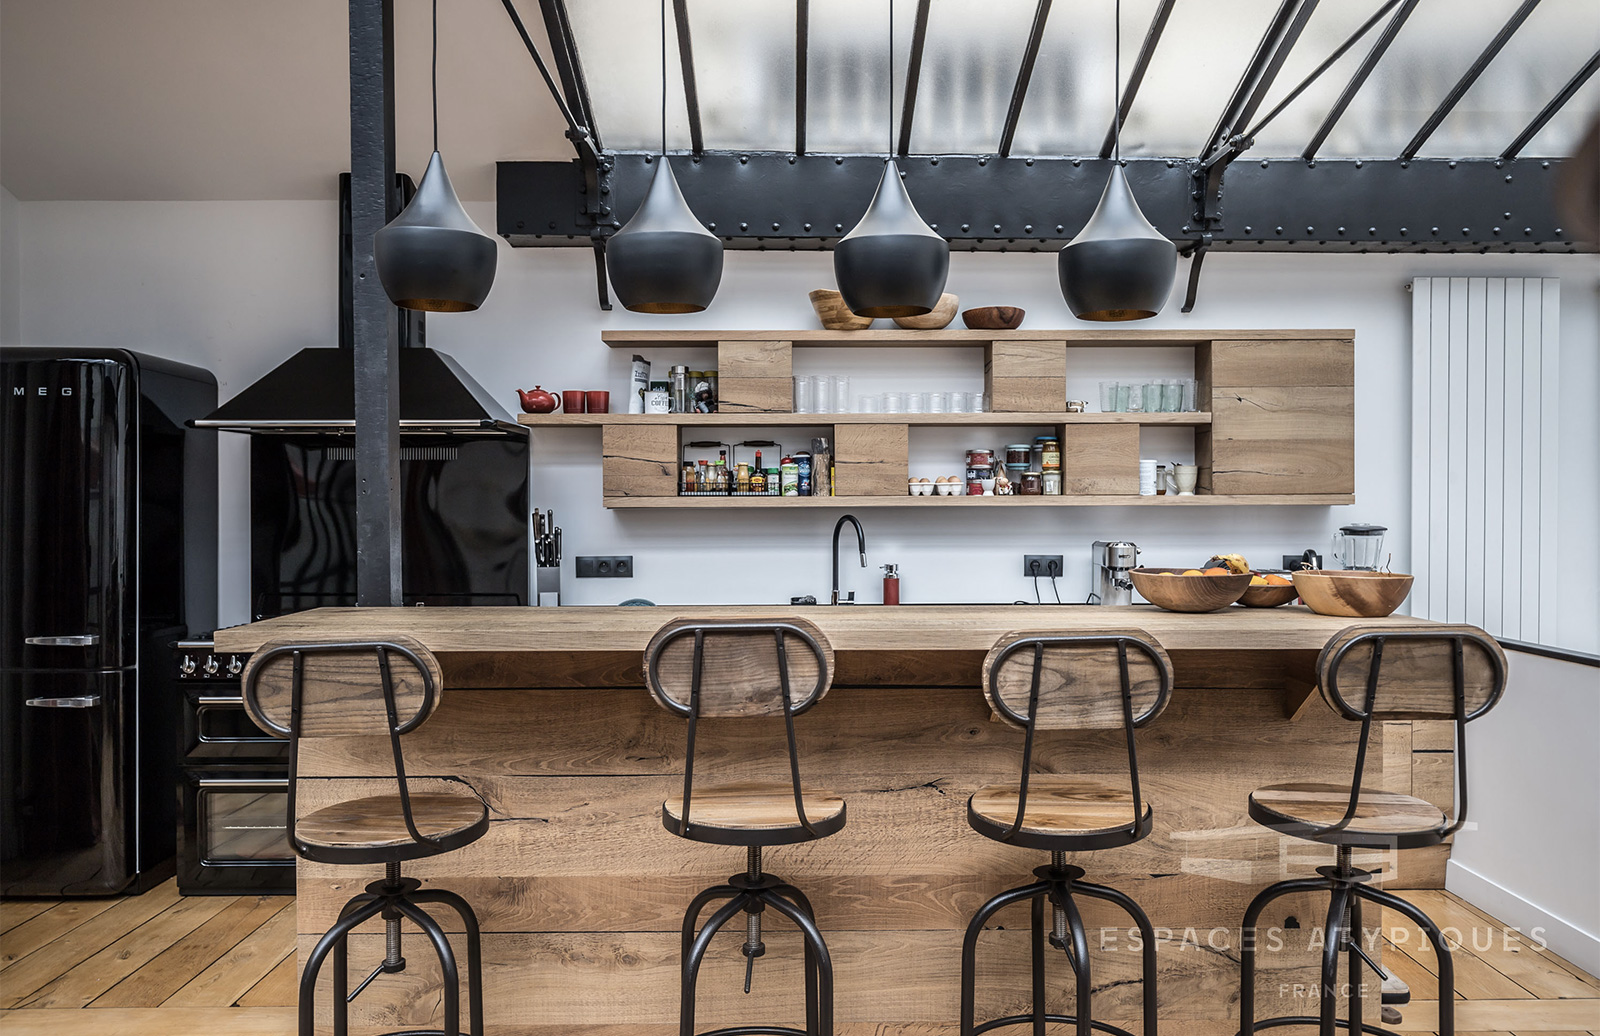 The kitchen fuses industrial and rustic elements